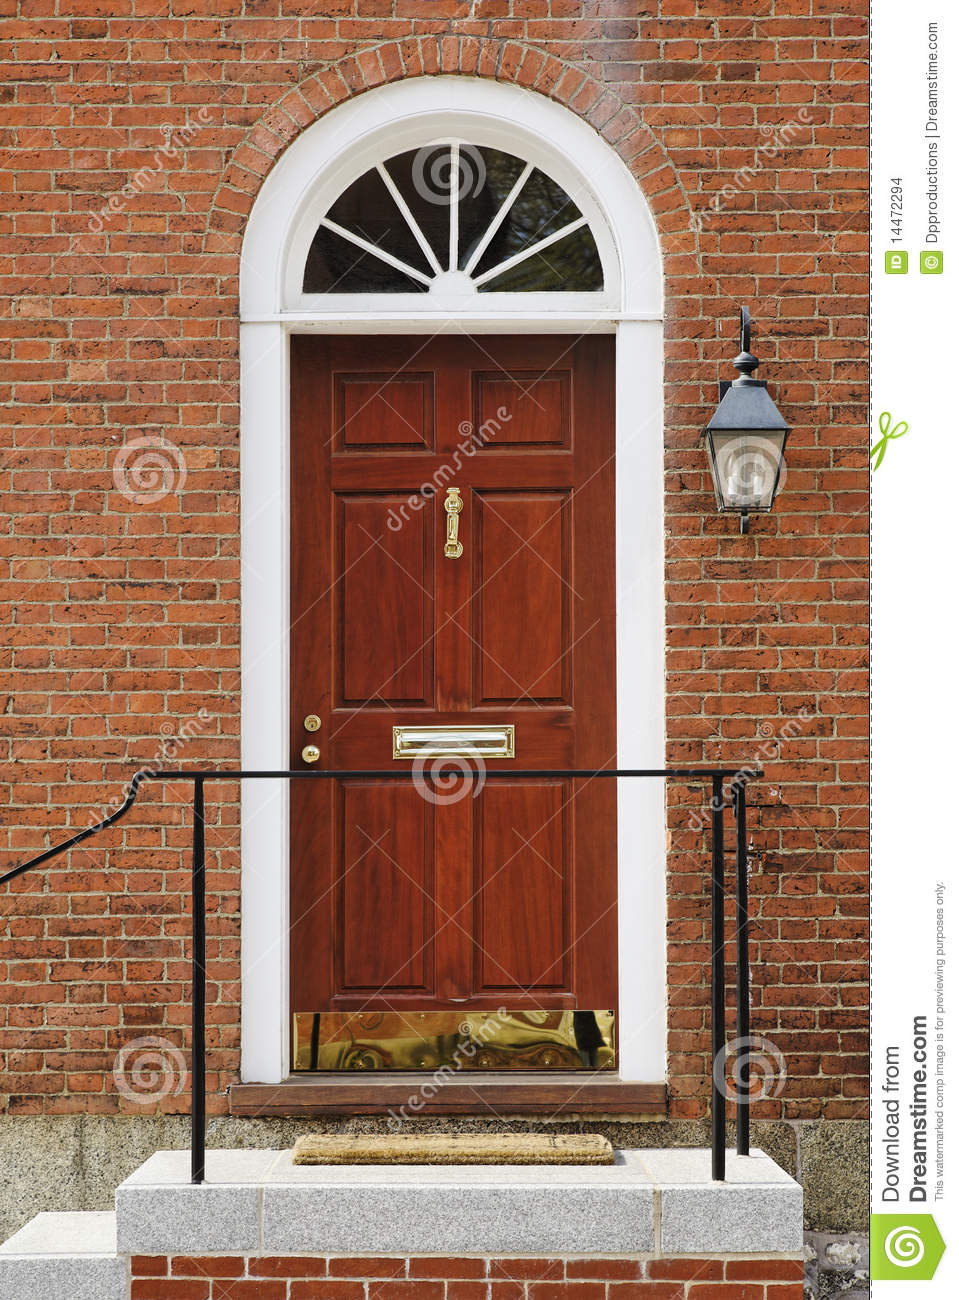 Elegant front door in a brick building stock photo image for Elegant front doors